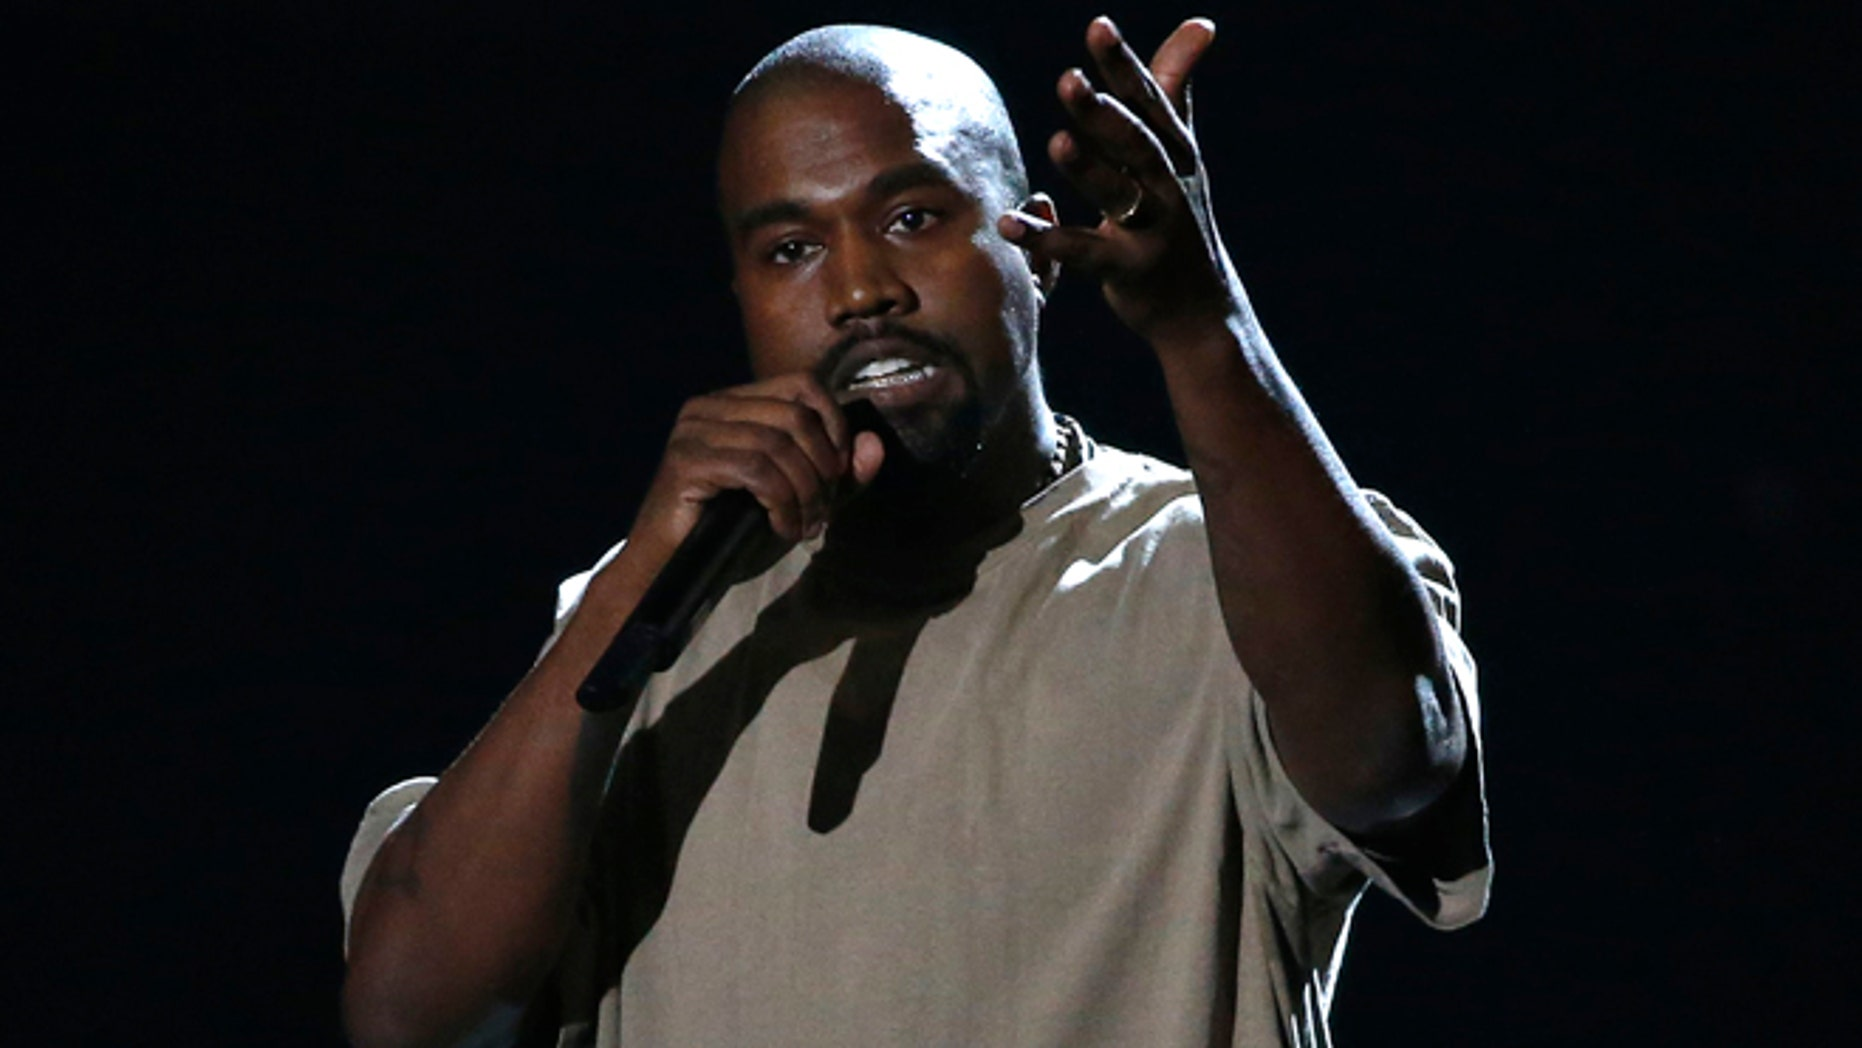 August 30, 2015. Kanye West accepts the Video Vanguard Award at the 2015 MTV Video Music Awards in Los Angeles.